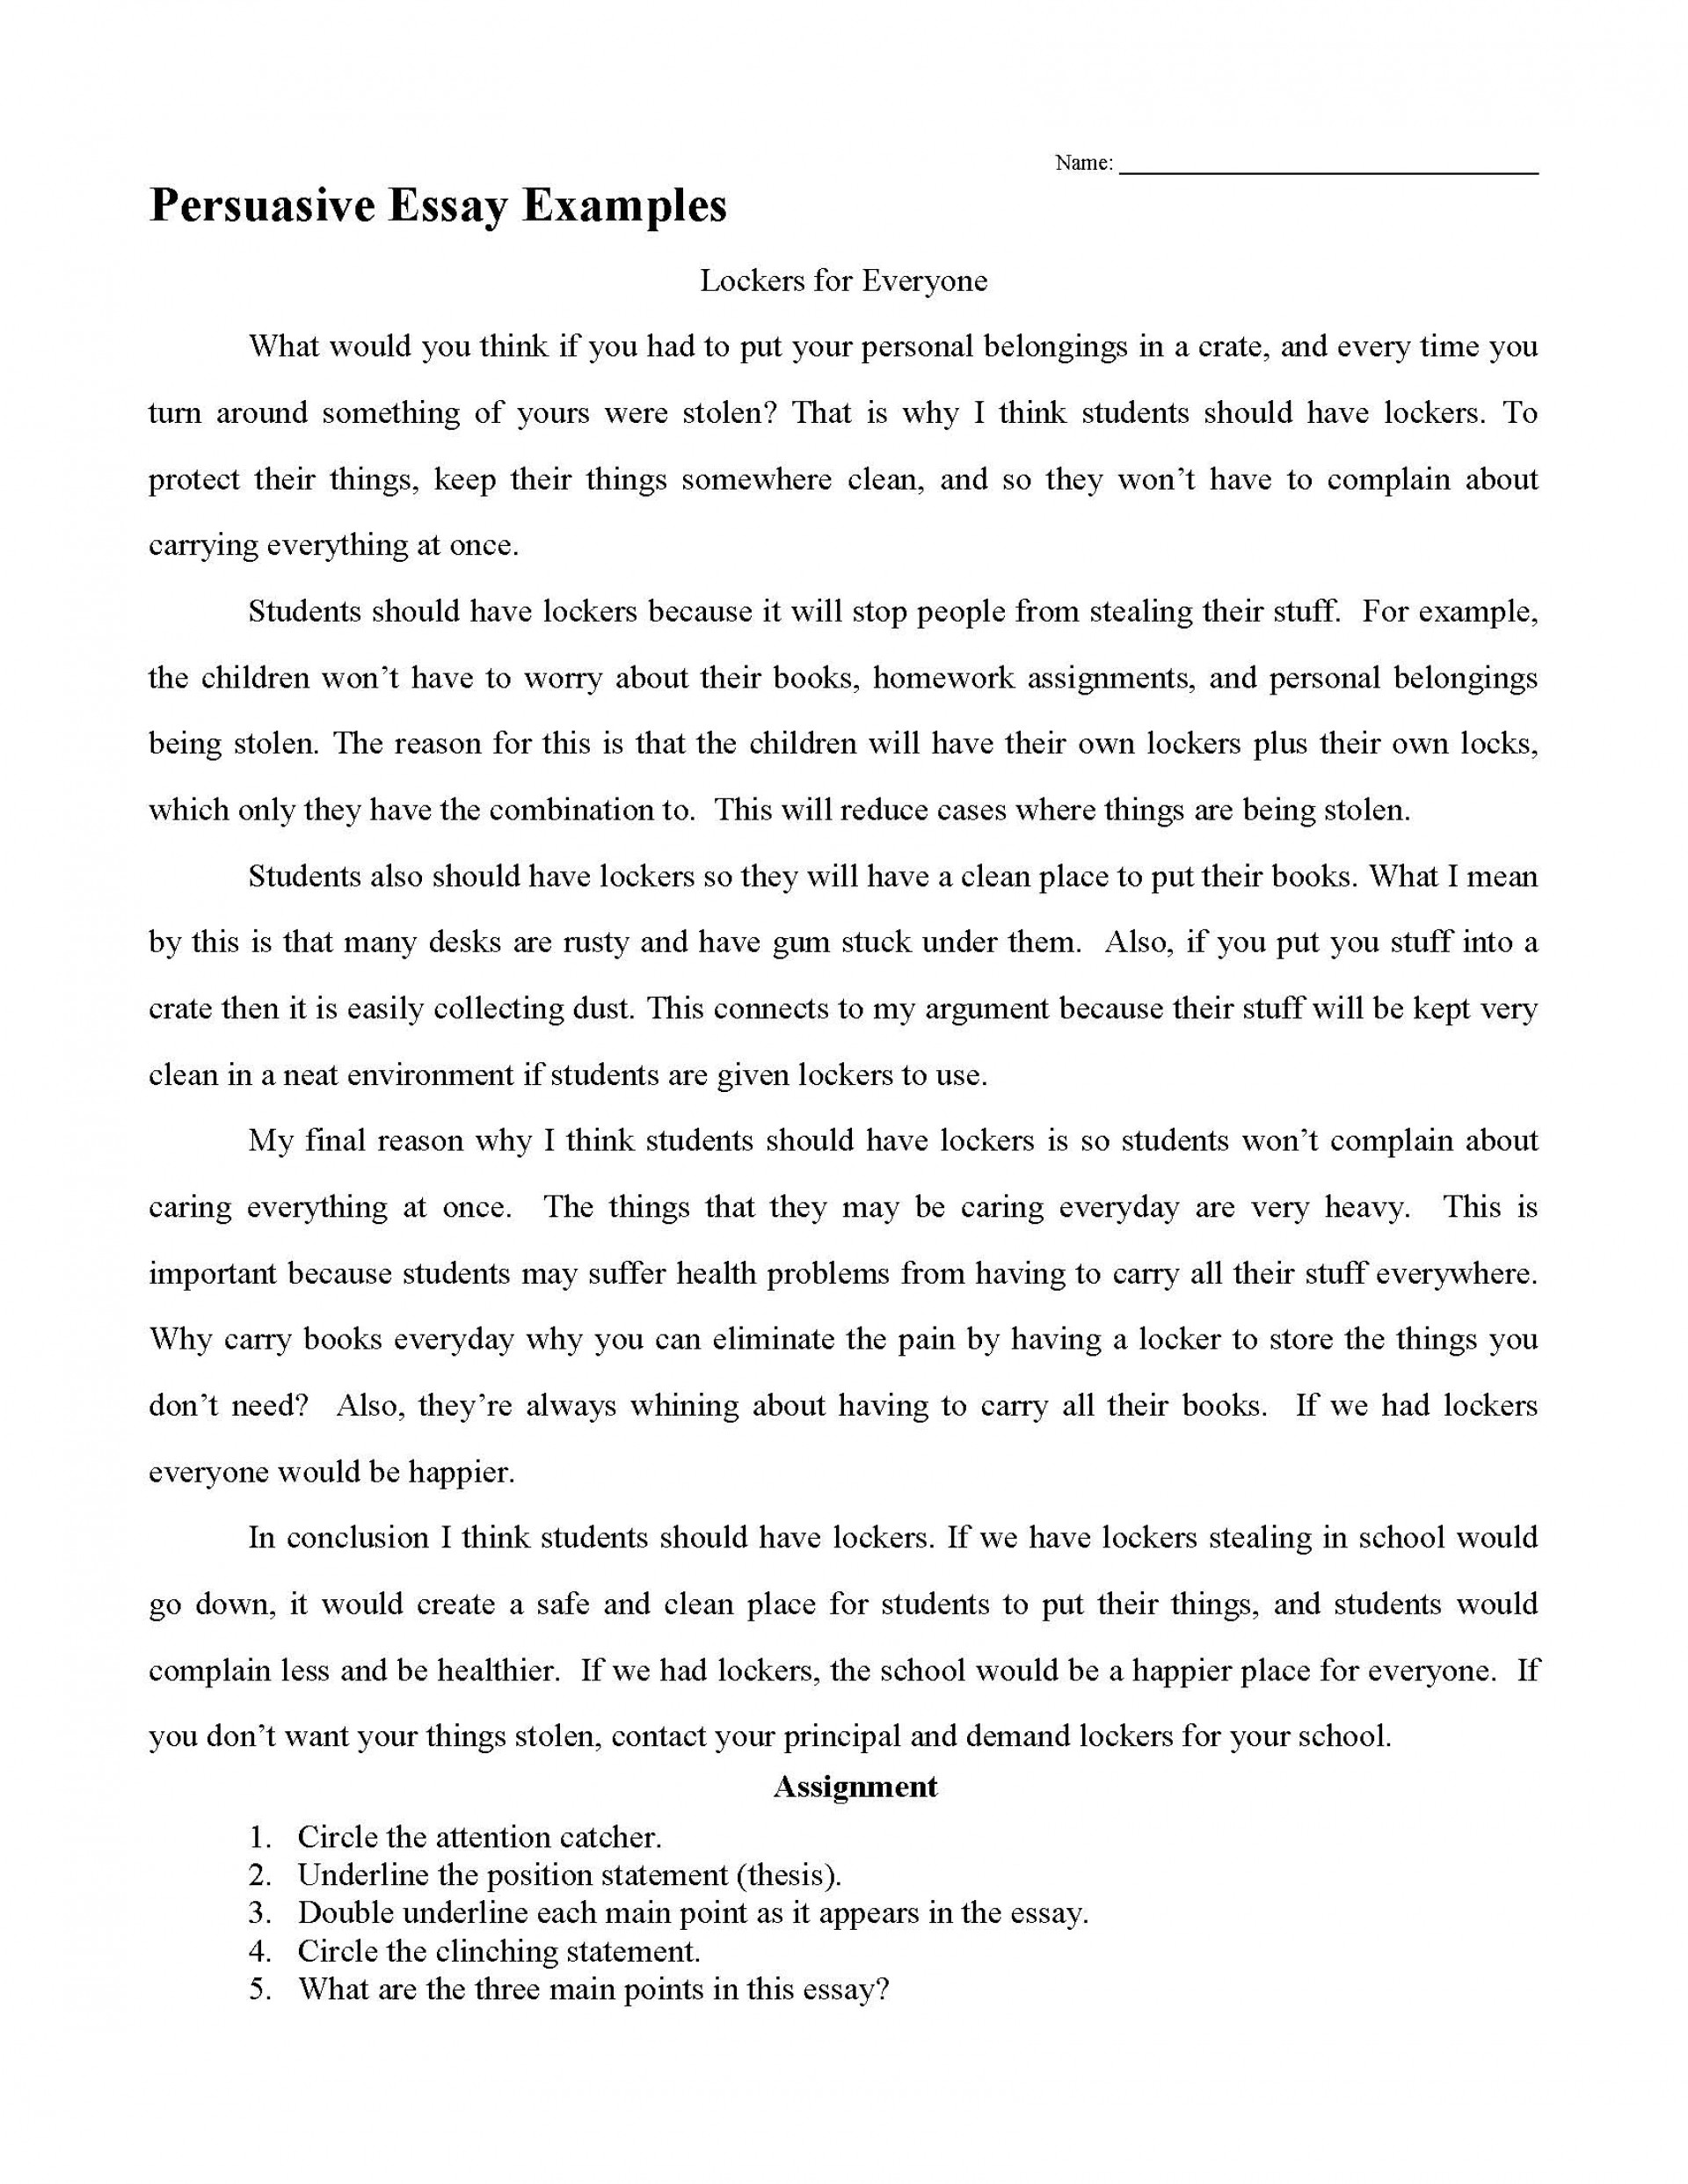 002 Essay Example Persuasive Examples Archaicawful Definition Literature Meaning And Literary 1920